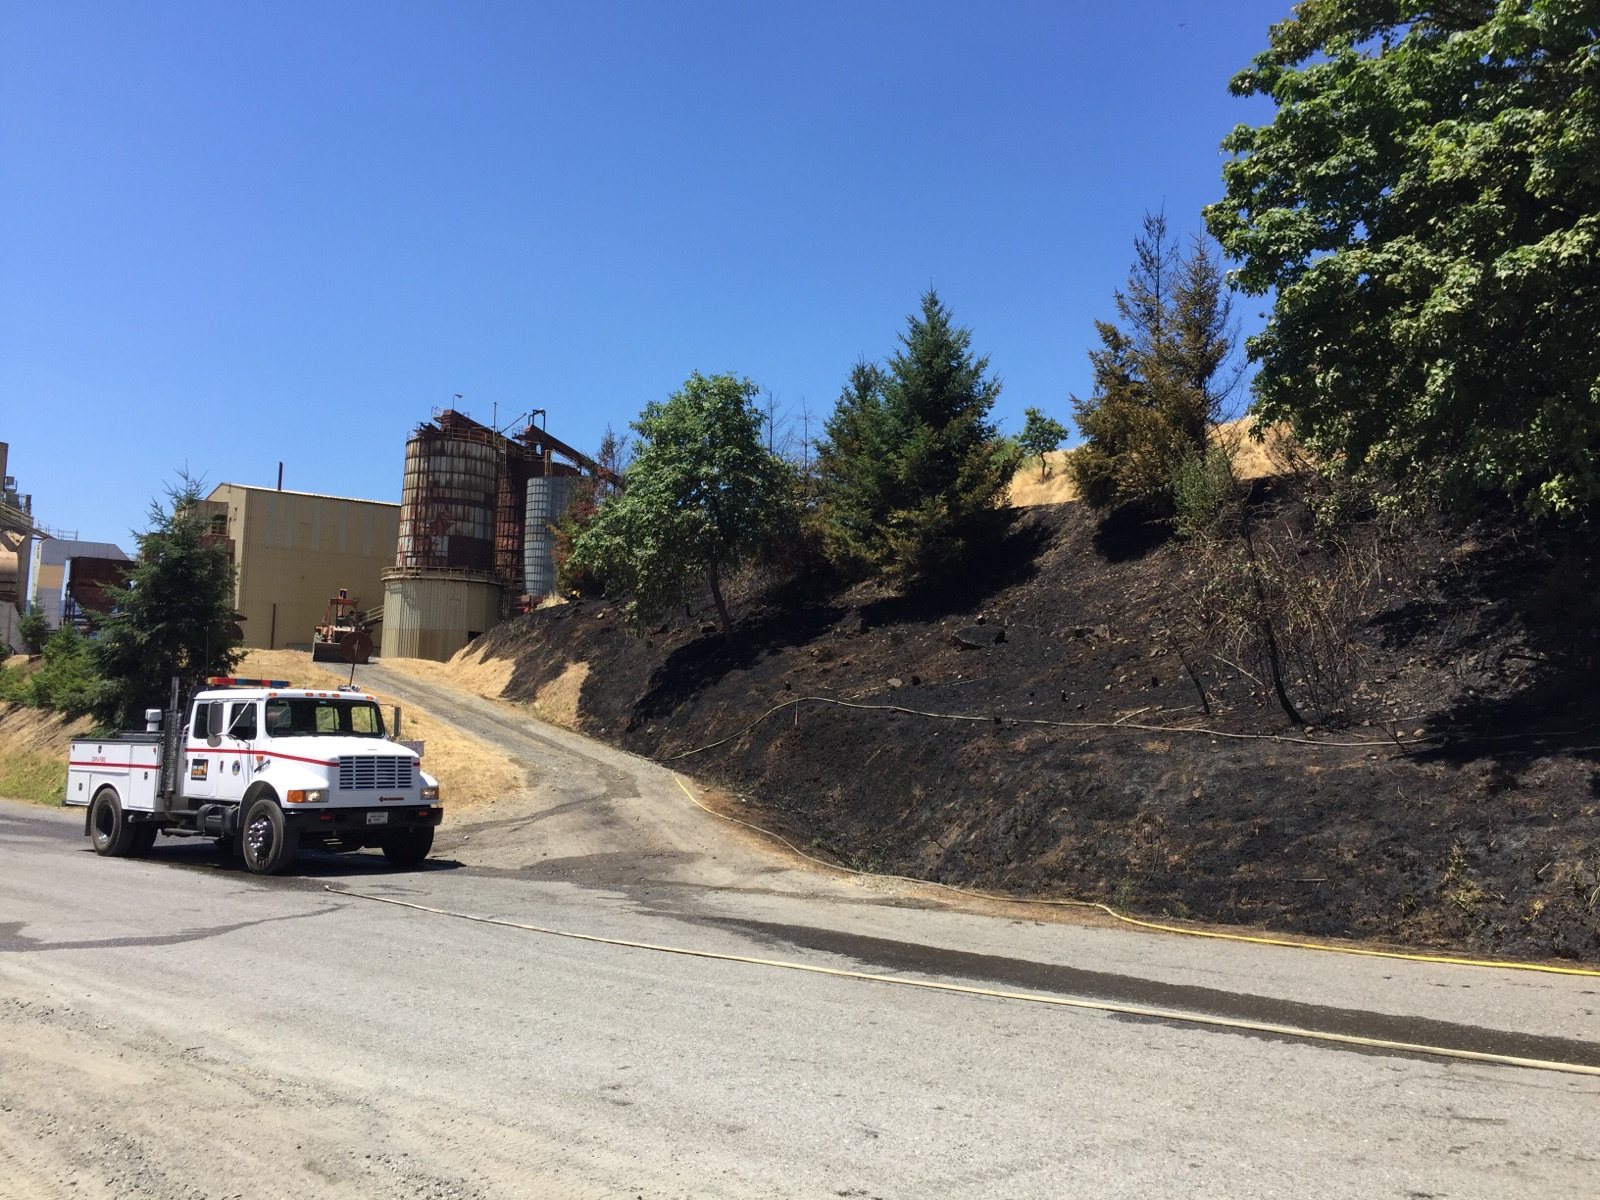 Firefighters responded to a natural cover fire on the hillside behind D.R. Johnson Lumber Company in Riddle. (Photo courtesy DFPA)